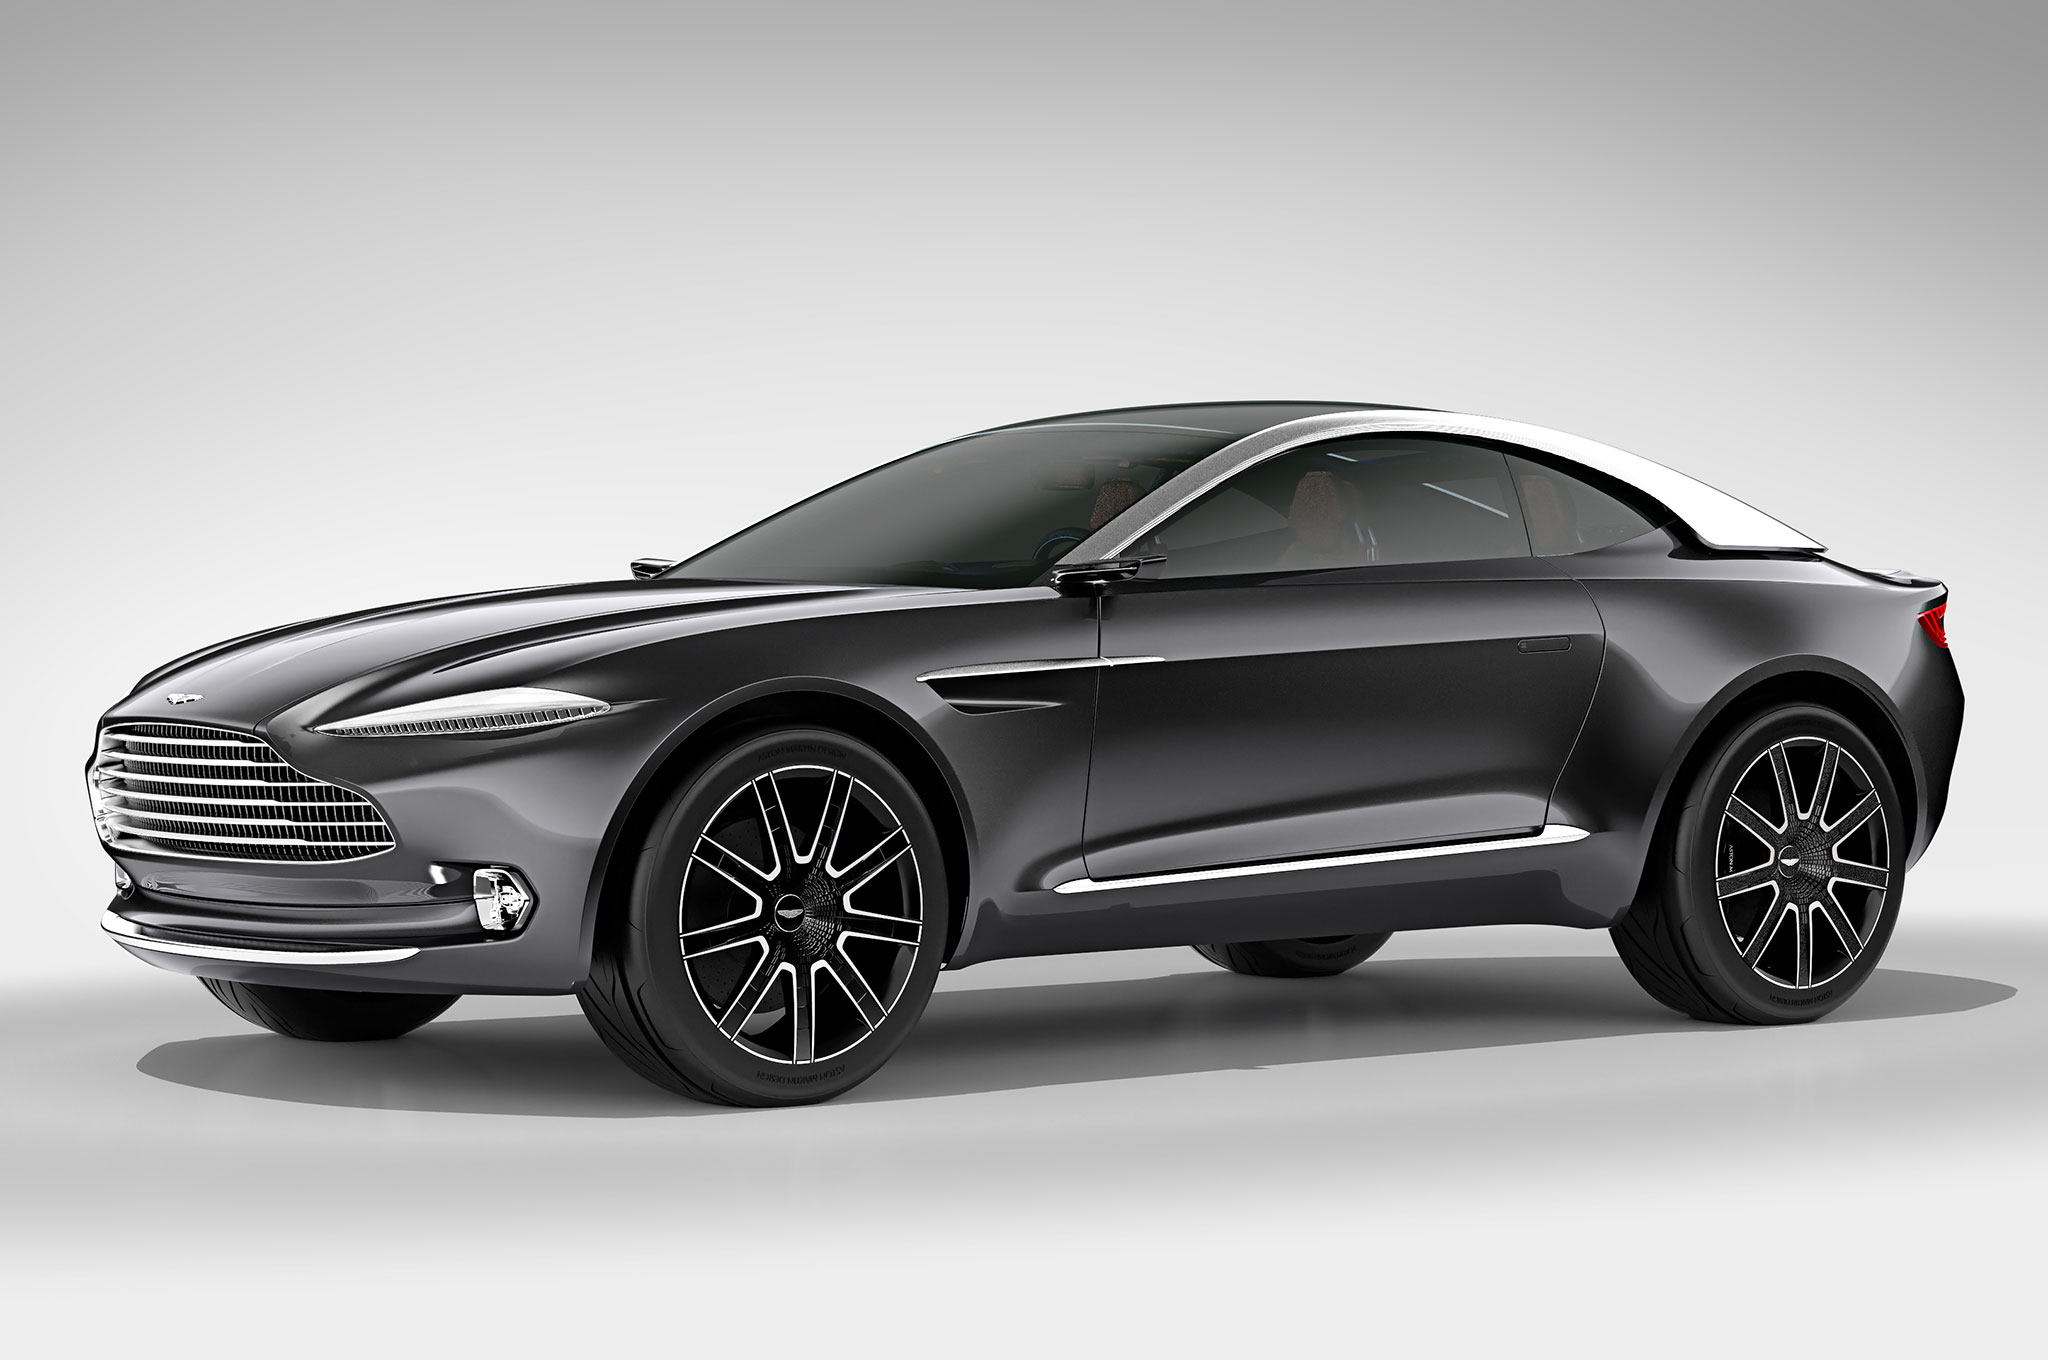 Aston Martin DBX Concept Front Three Quarter Studio3